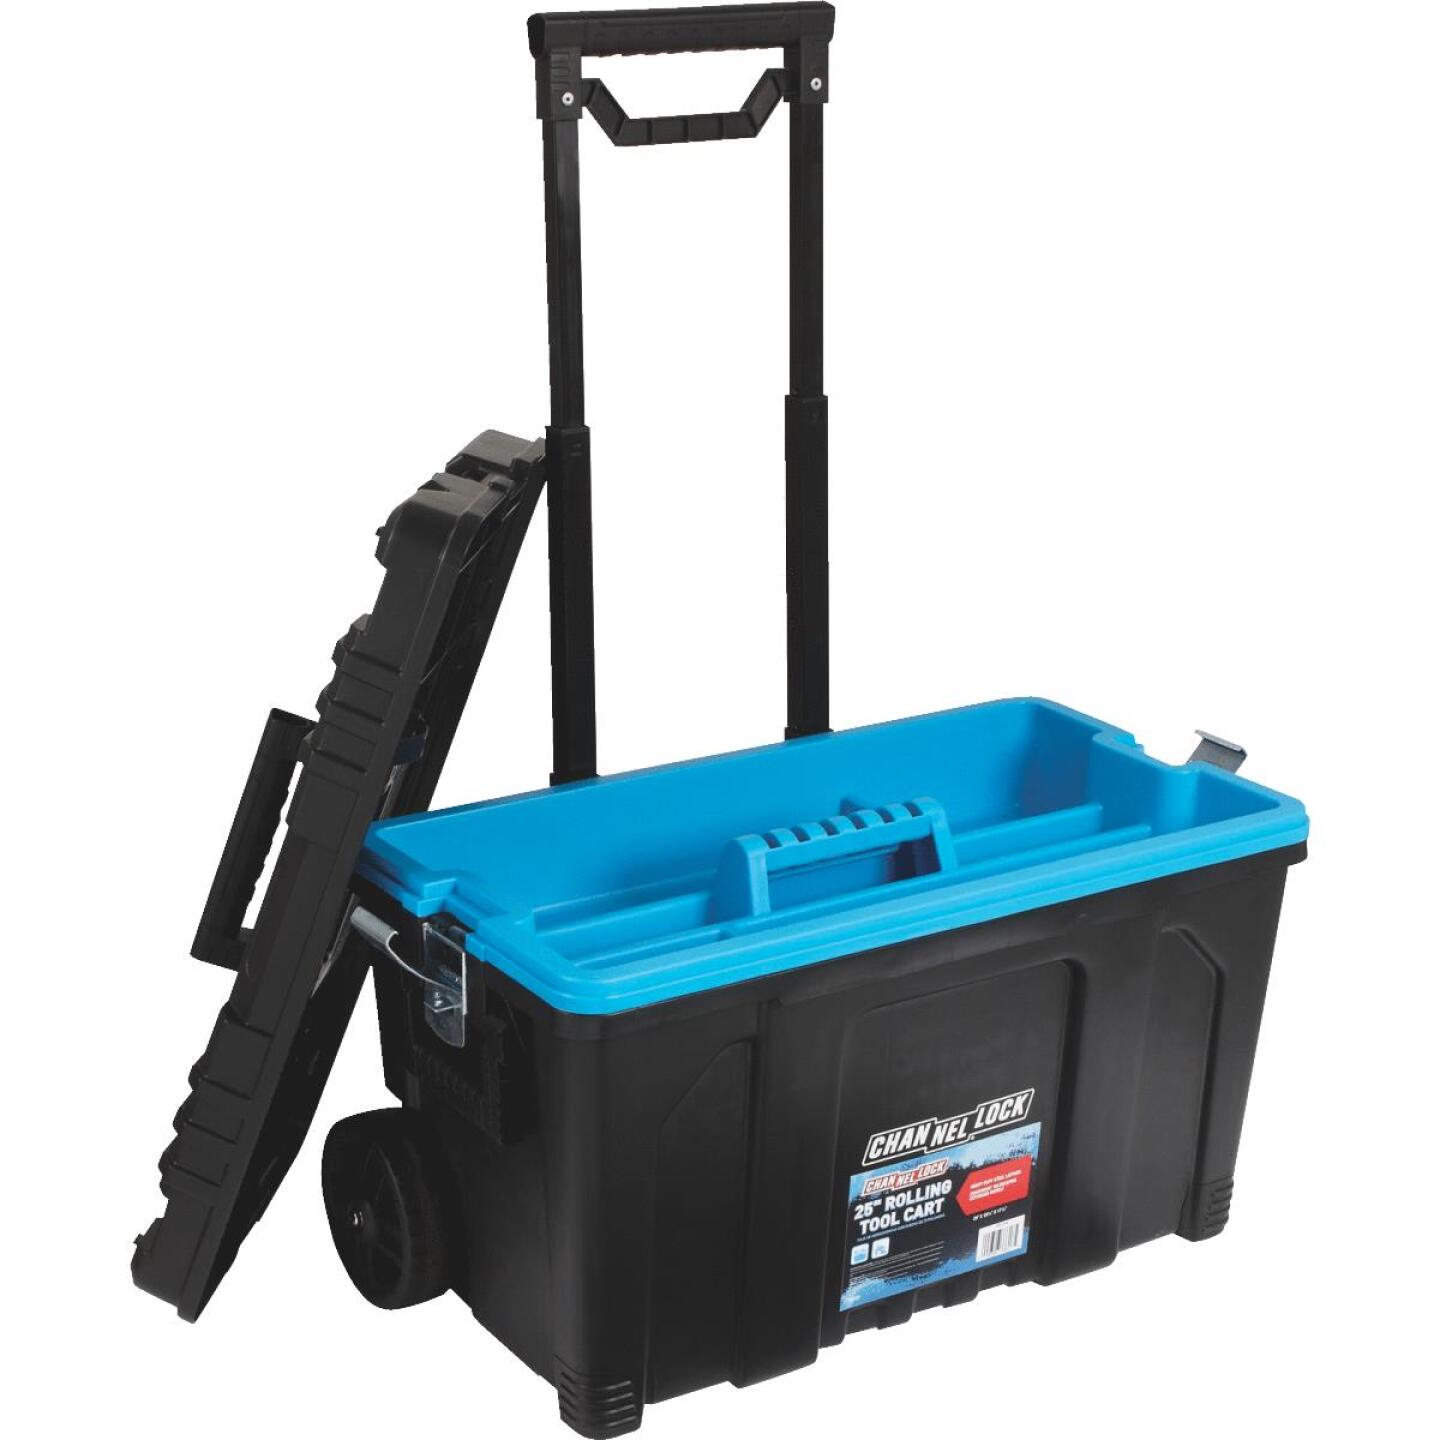 Channellock 25 In. Rolling Toolbox Image 4